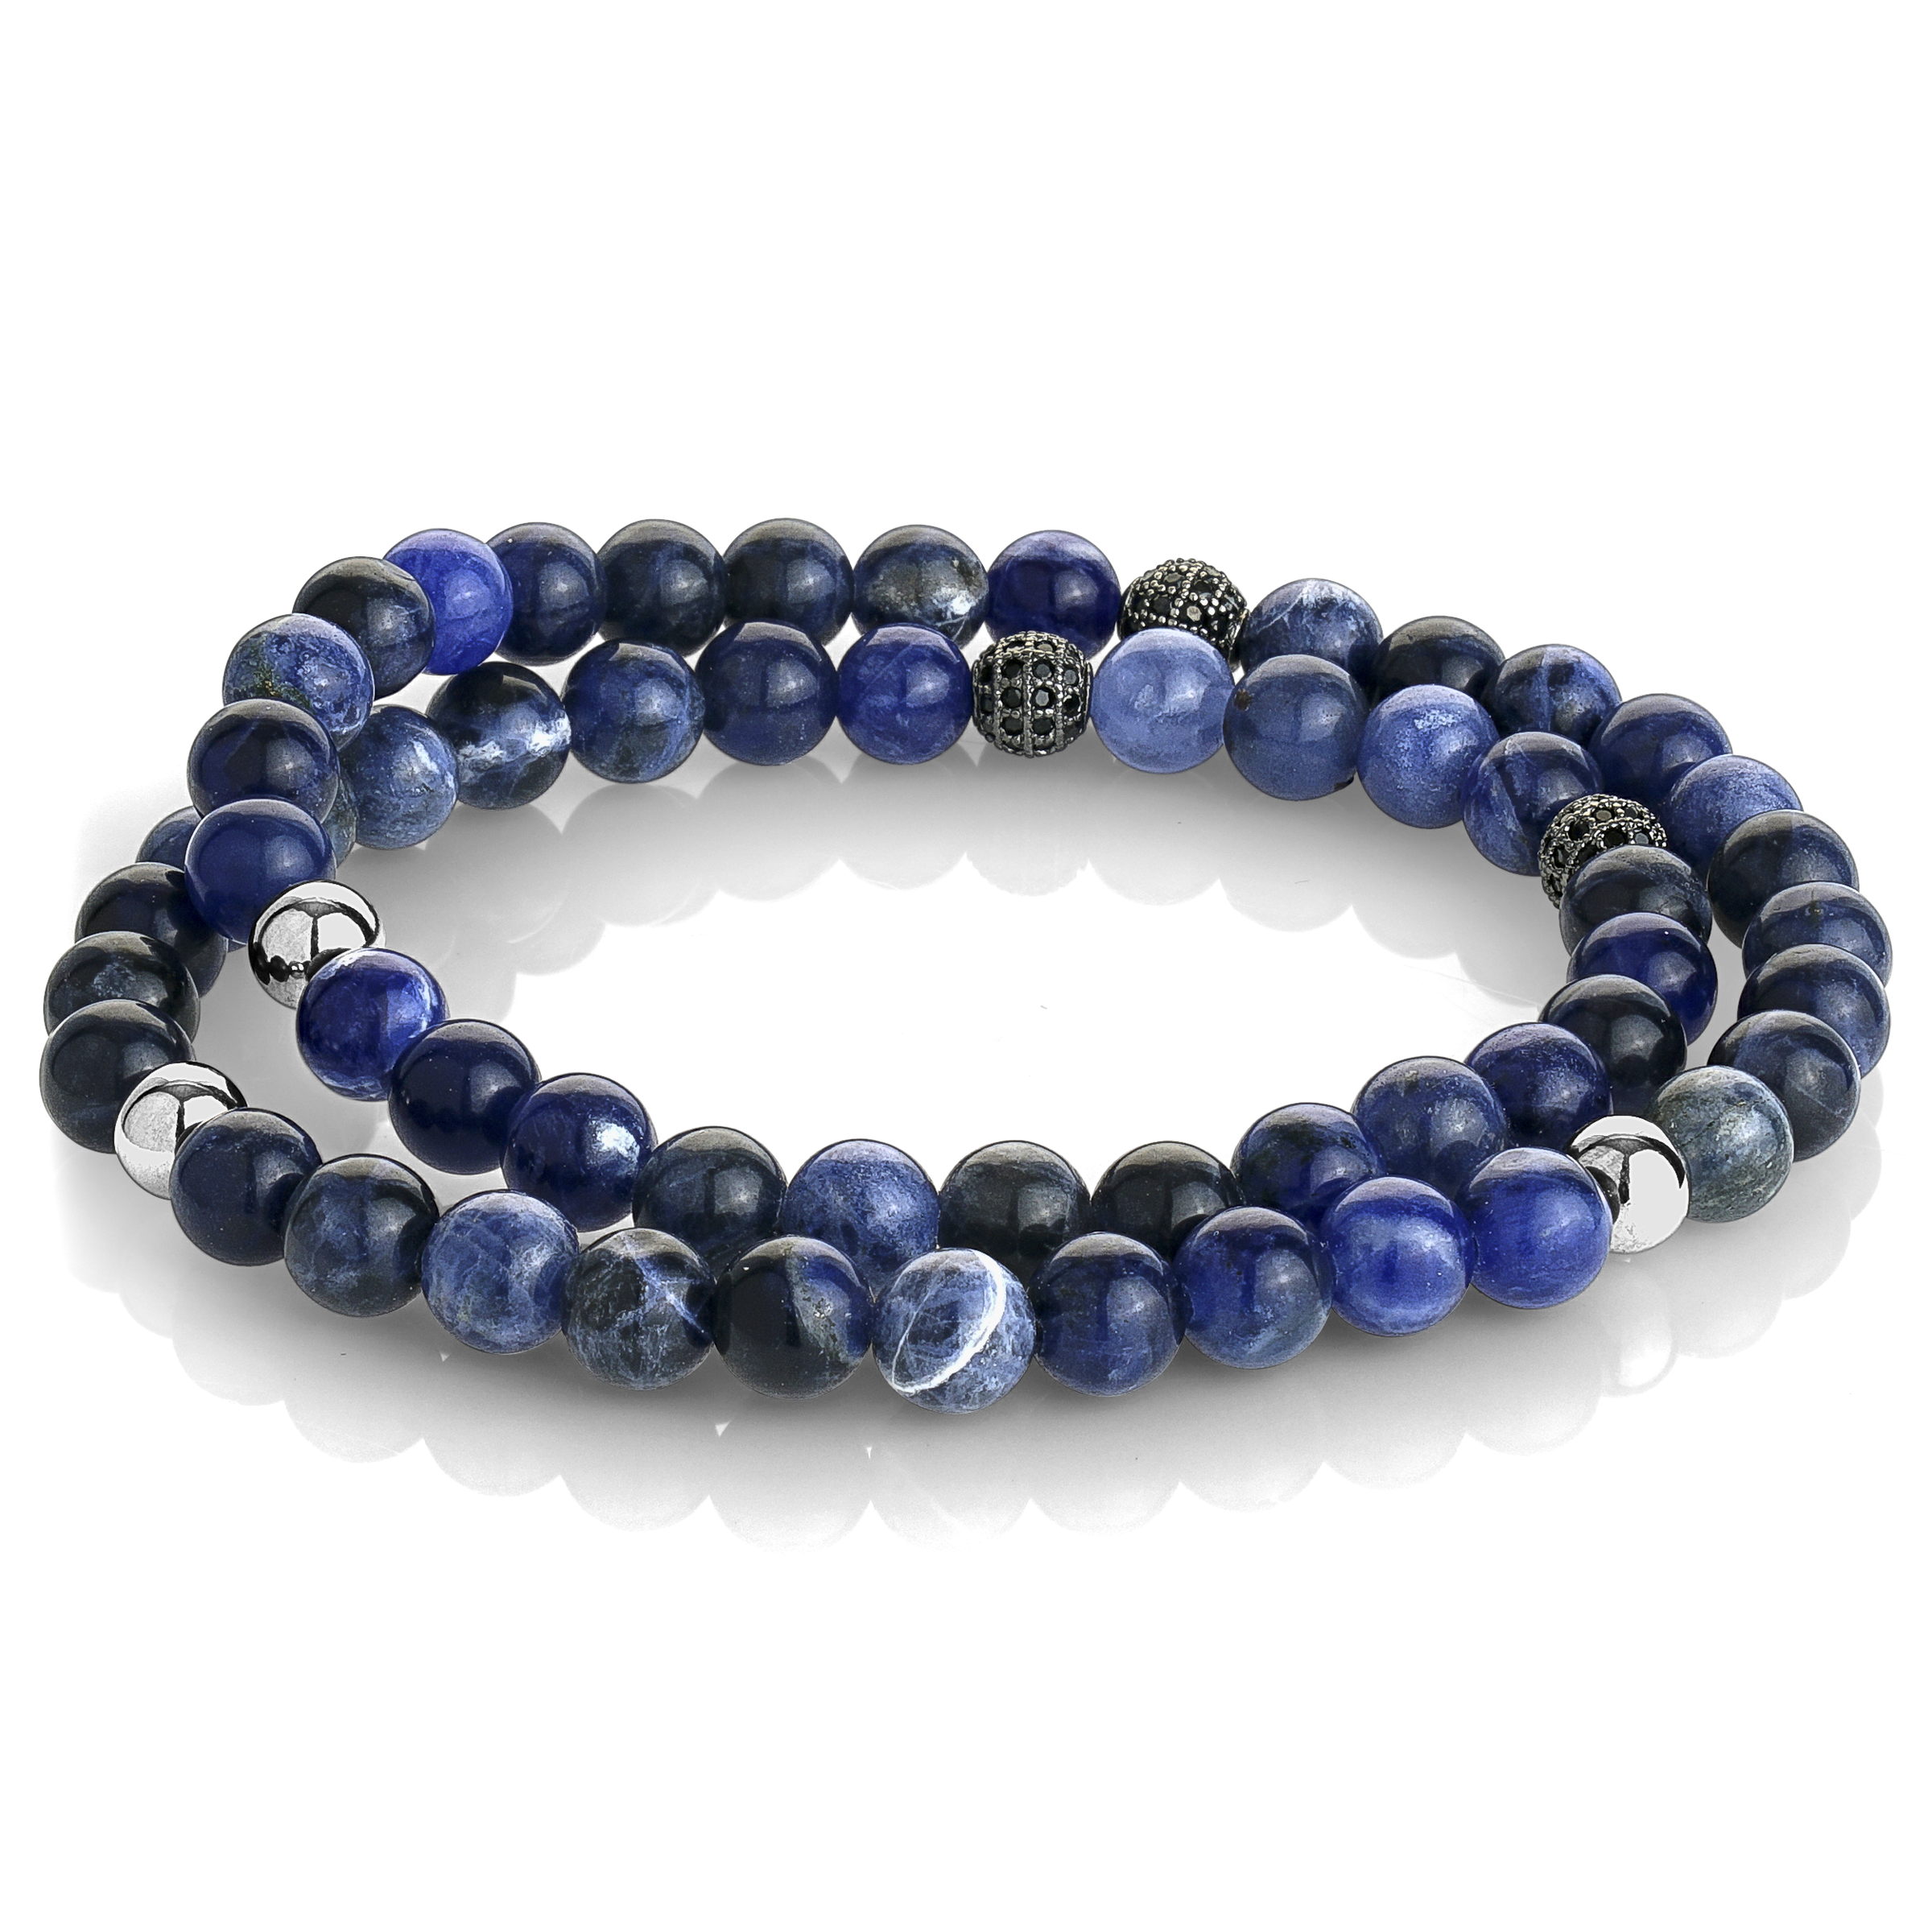 Double loop bracelet for man - Stainless steel & Blue beads